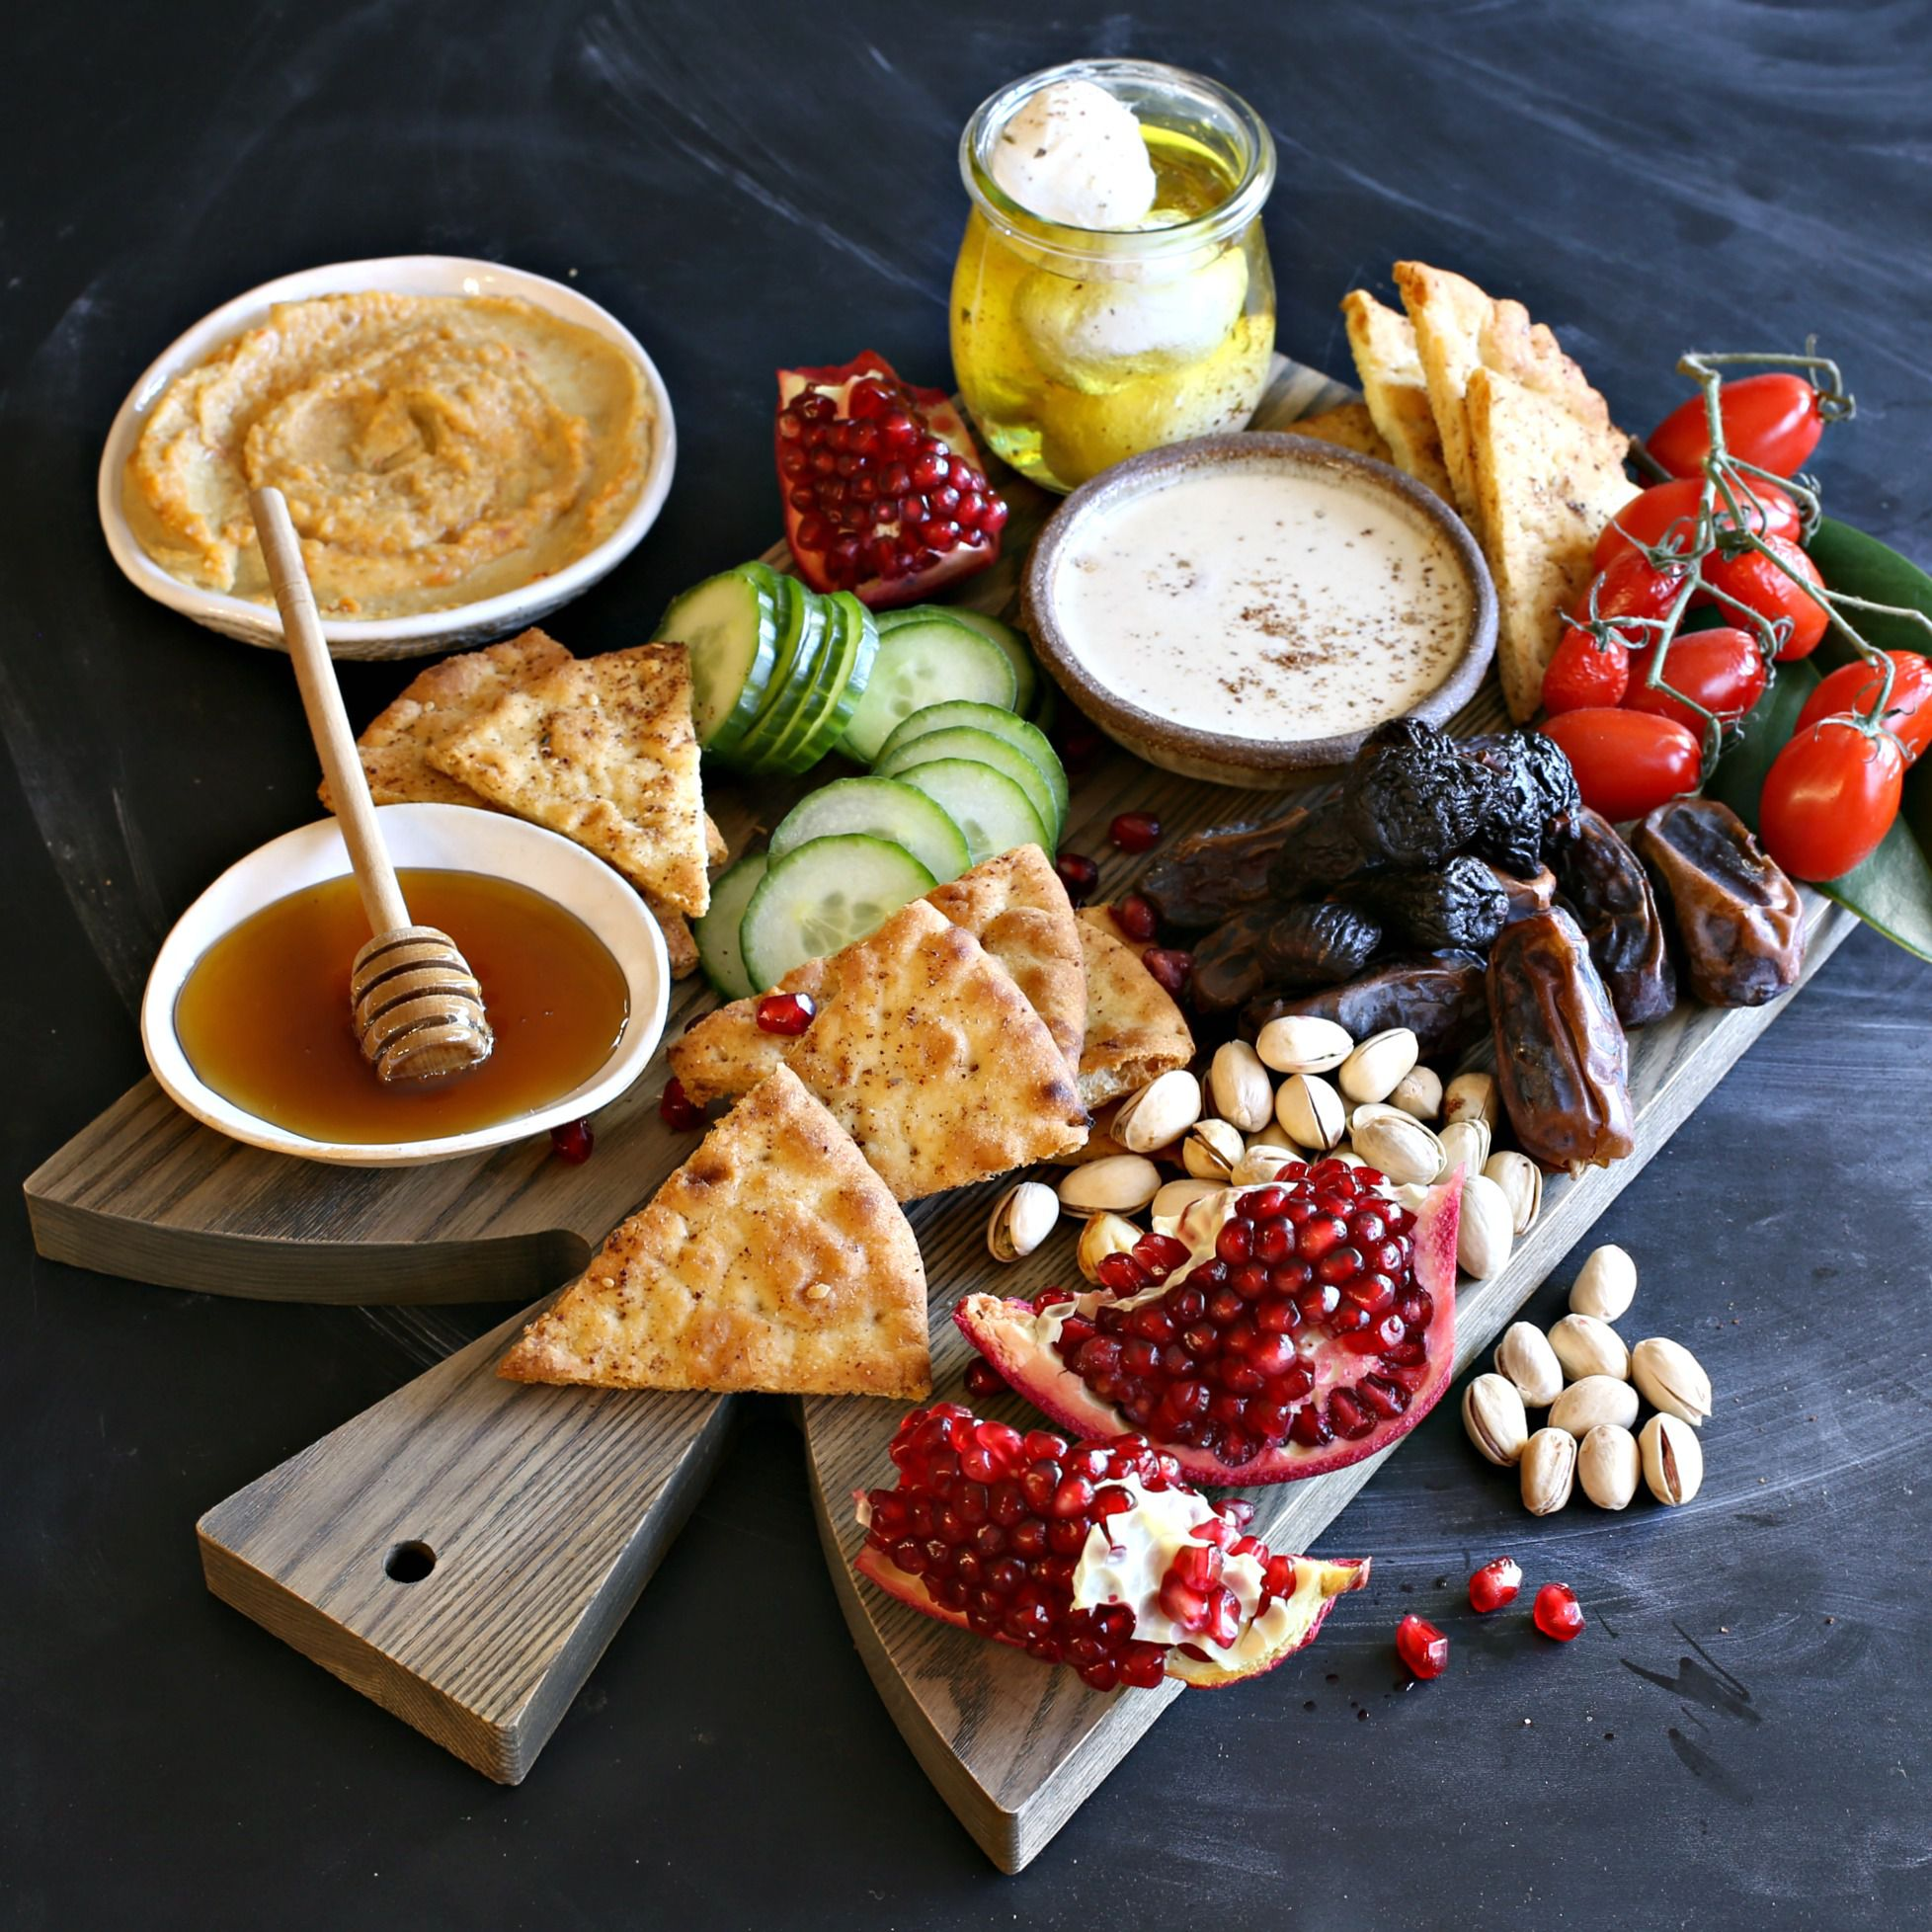 Cheese Board Ideas Pictures: Middle Eastern-Inspired Appetizer Cheese Board